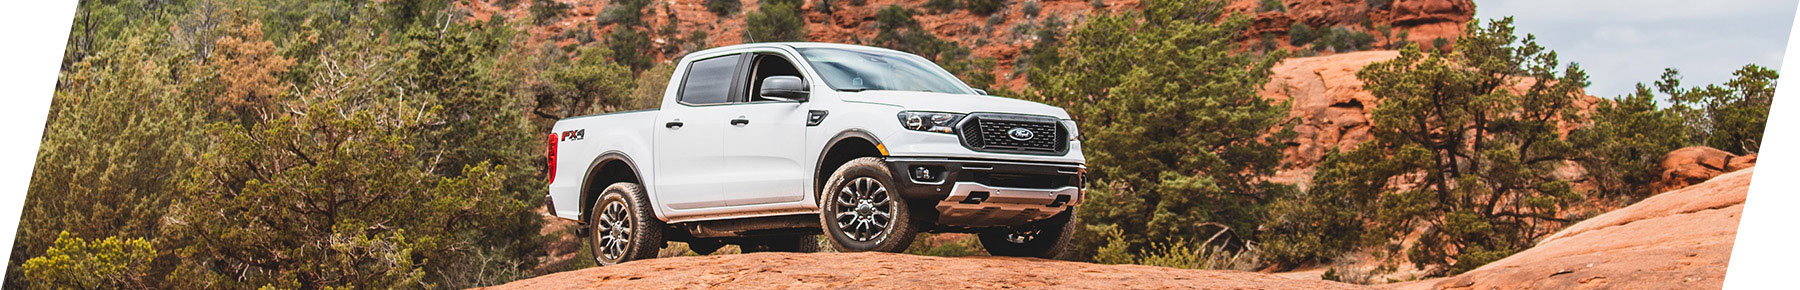 Truck Performance Shops Near Me >> 2019 Ford Ranger 2 3l Ecoboost Performance Parts Accessories